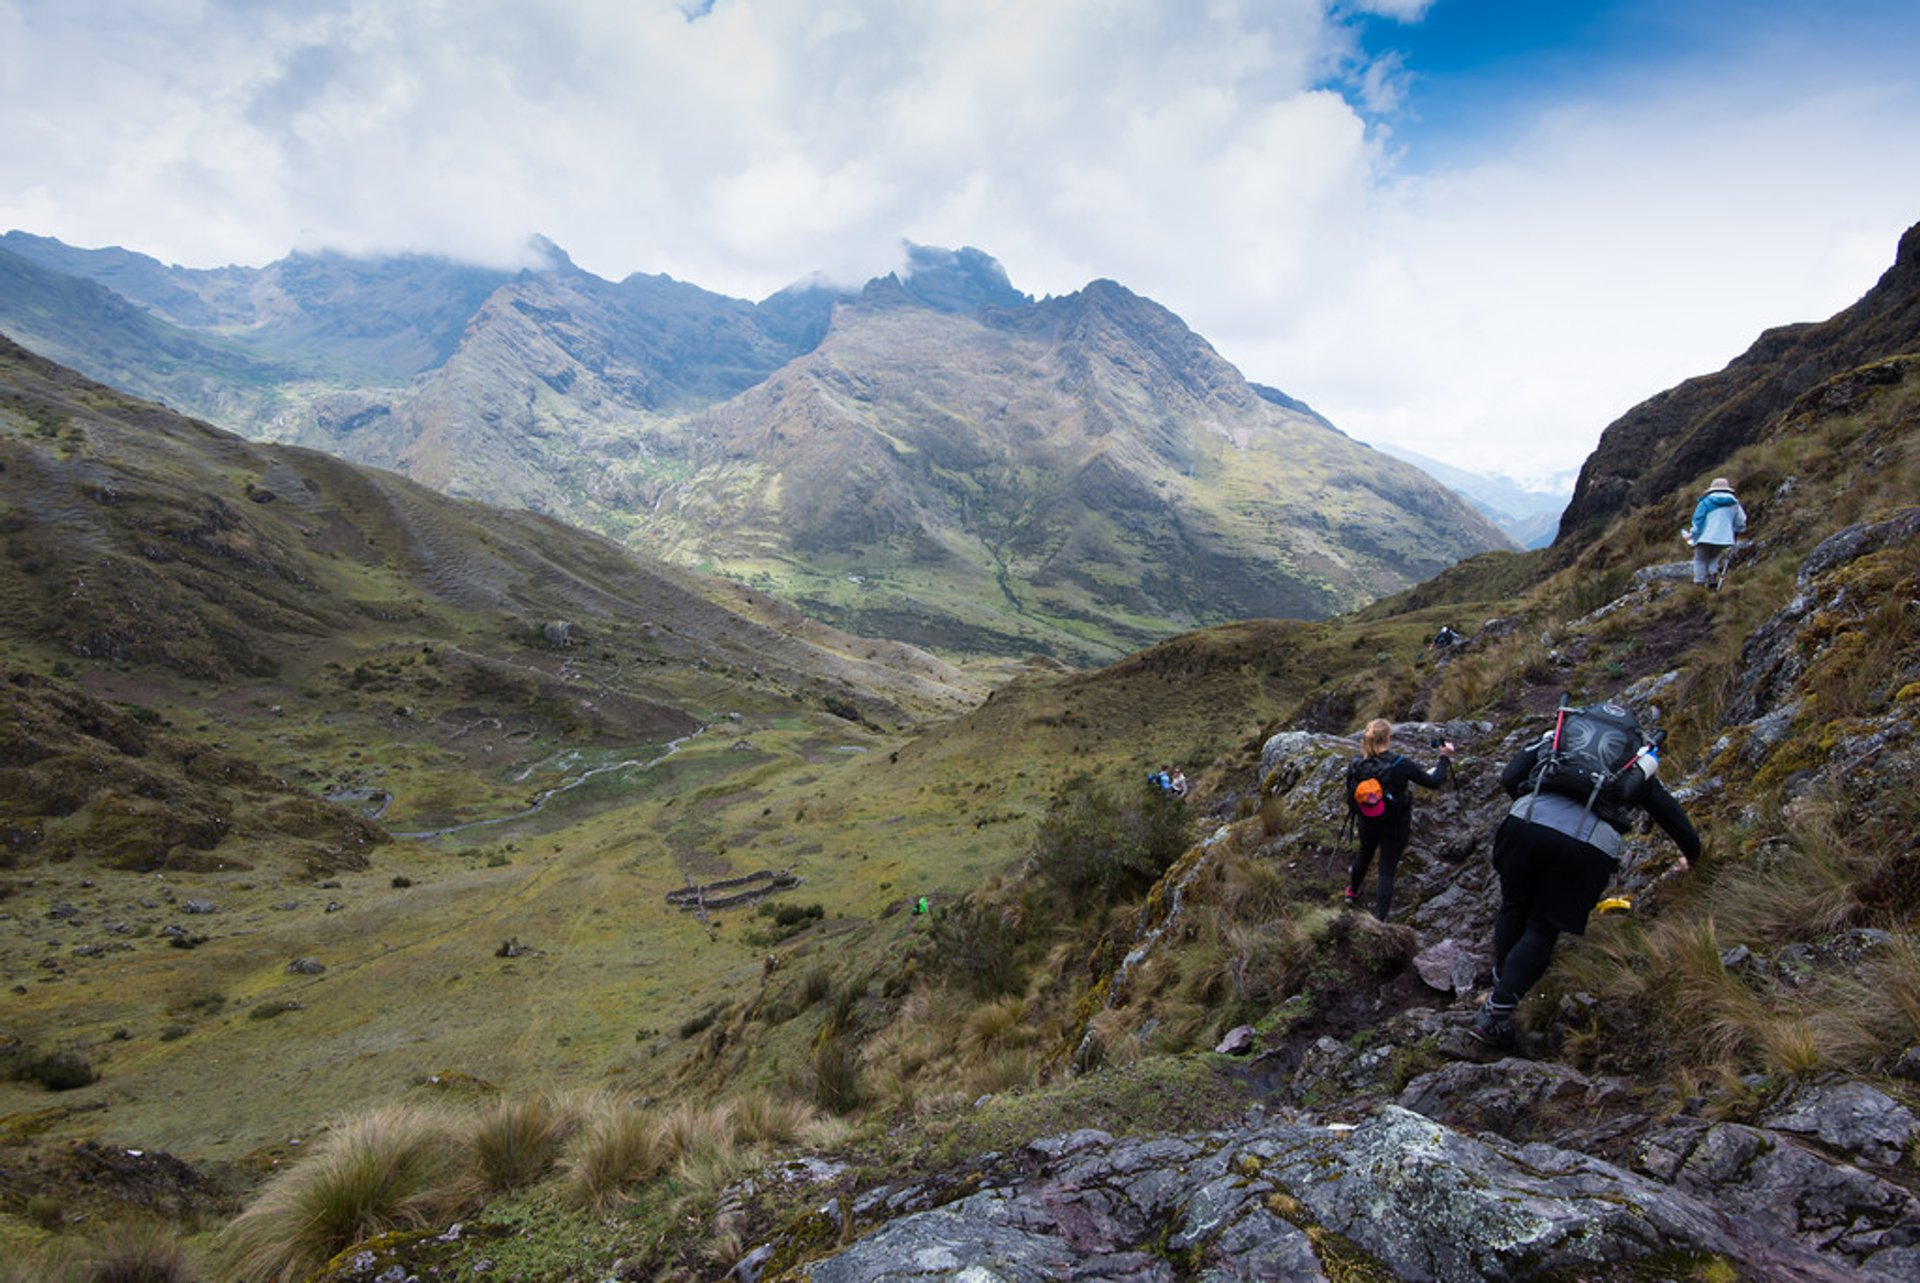 Rainy Season Trekking in Peru - Best Season 2020